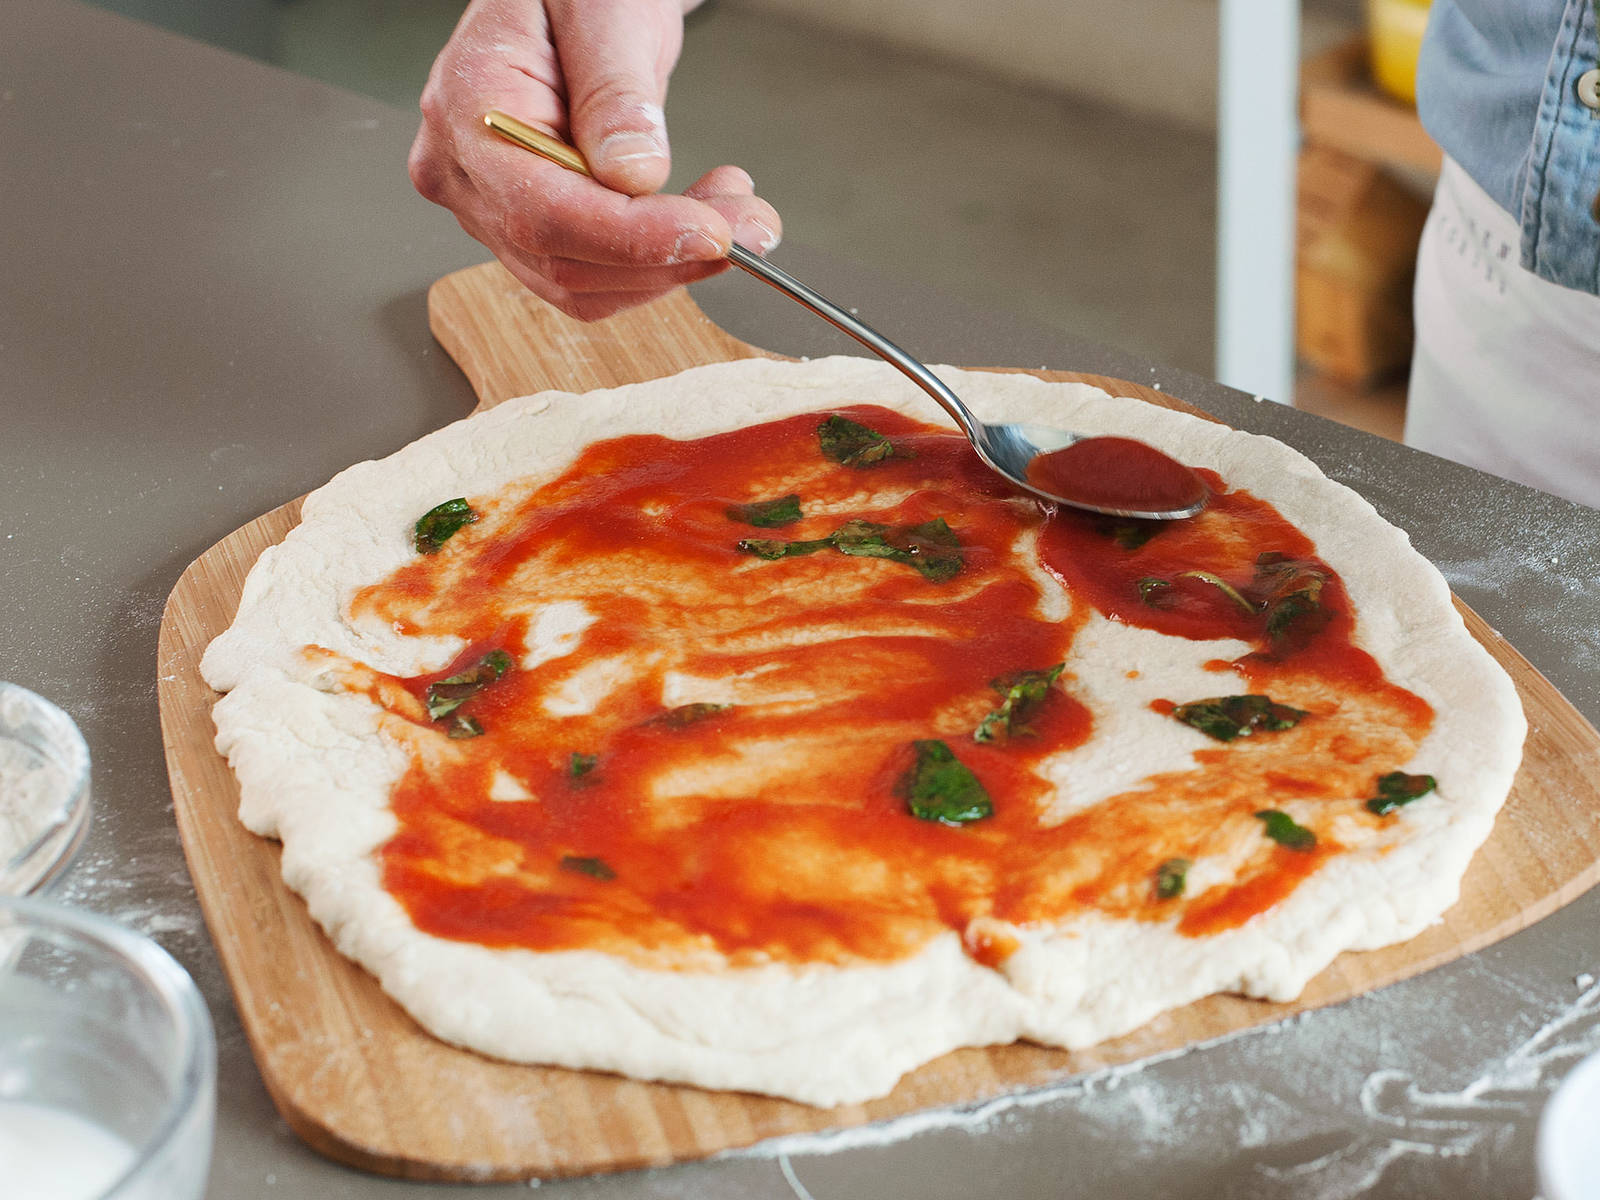 In a small bowl, mix together tomato purée, olive oil, and salt. Roughly tear up basil leaves and add them to sauce. Spread a thin layer over pizza, transfer to pizza stone, and bake in preheated oven at 250°C/480°F for approx. 6 – 7 min.